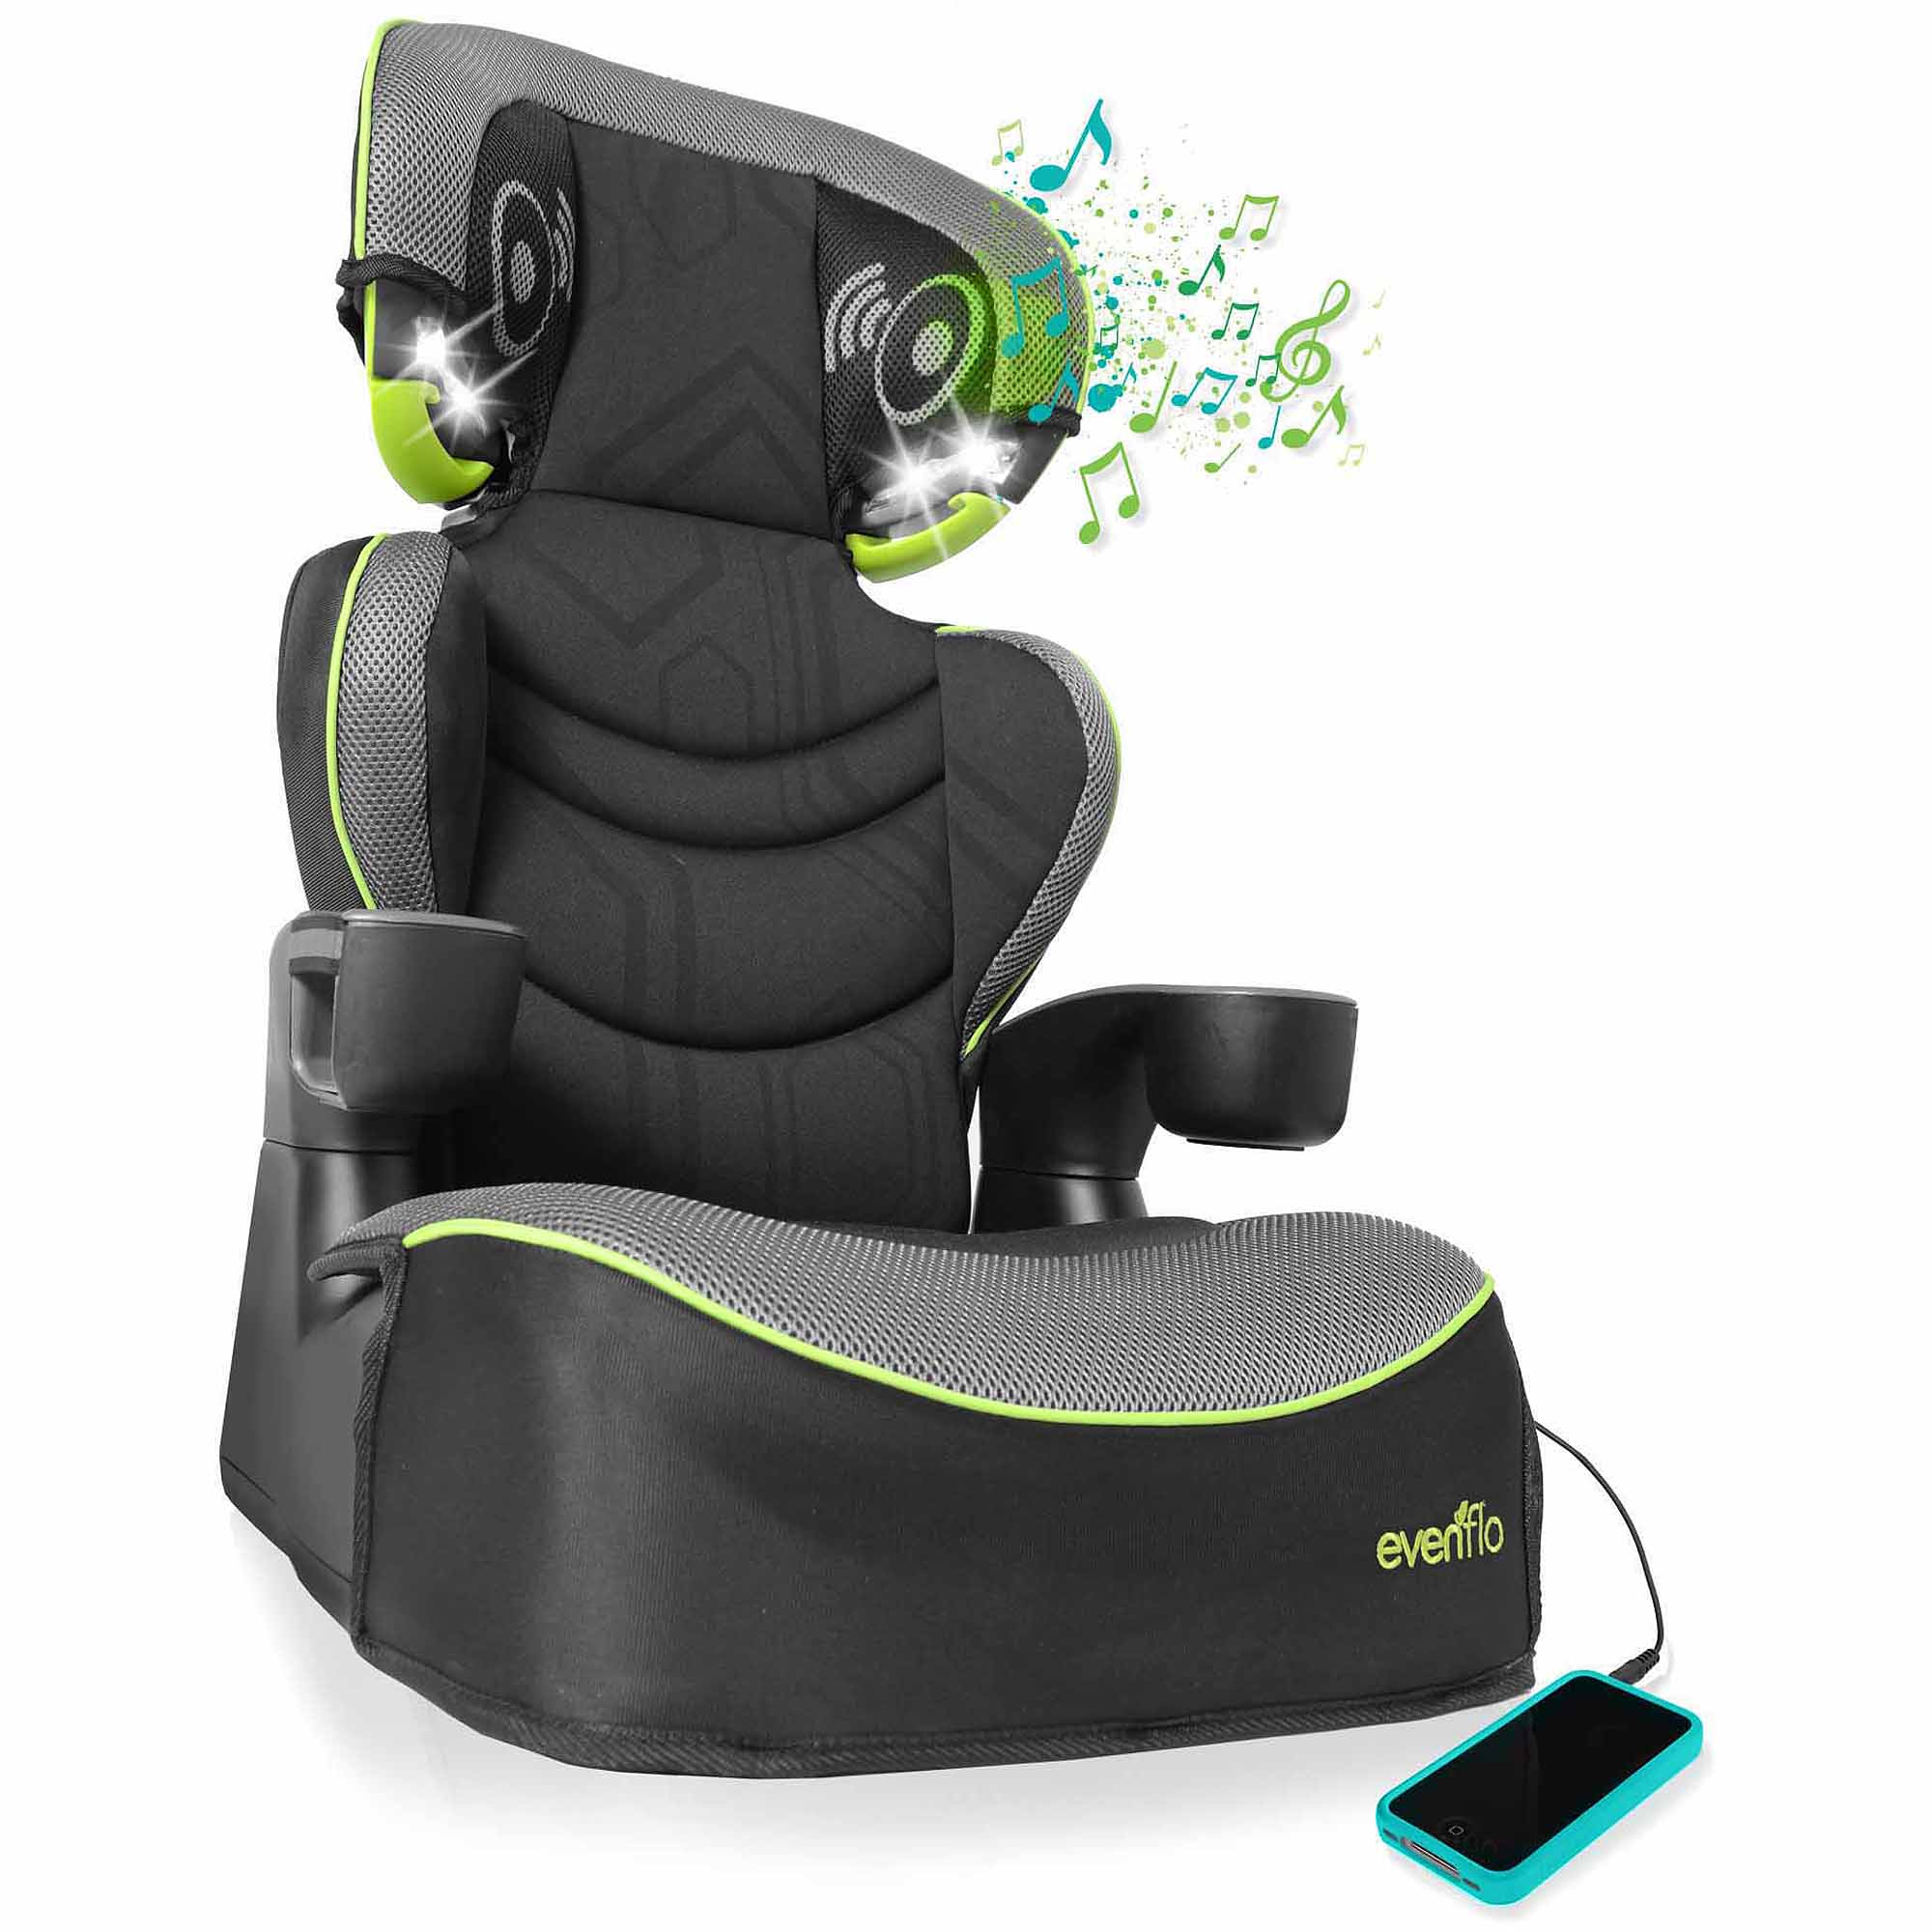 evenflo big kid dlx high back booster car seat jonah walmartcom